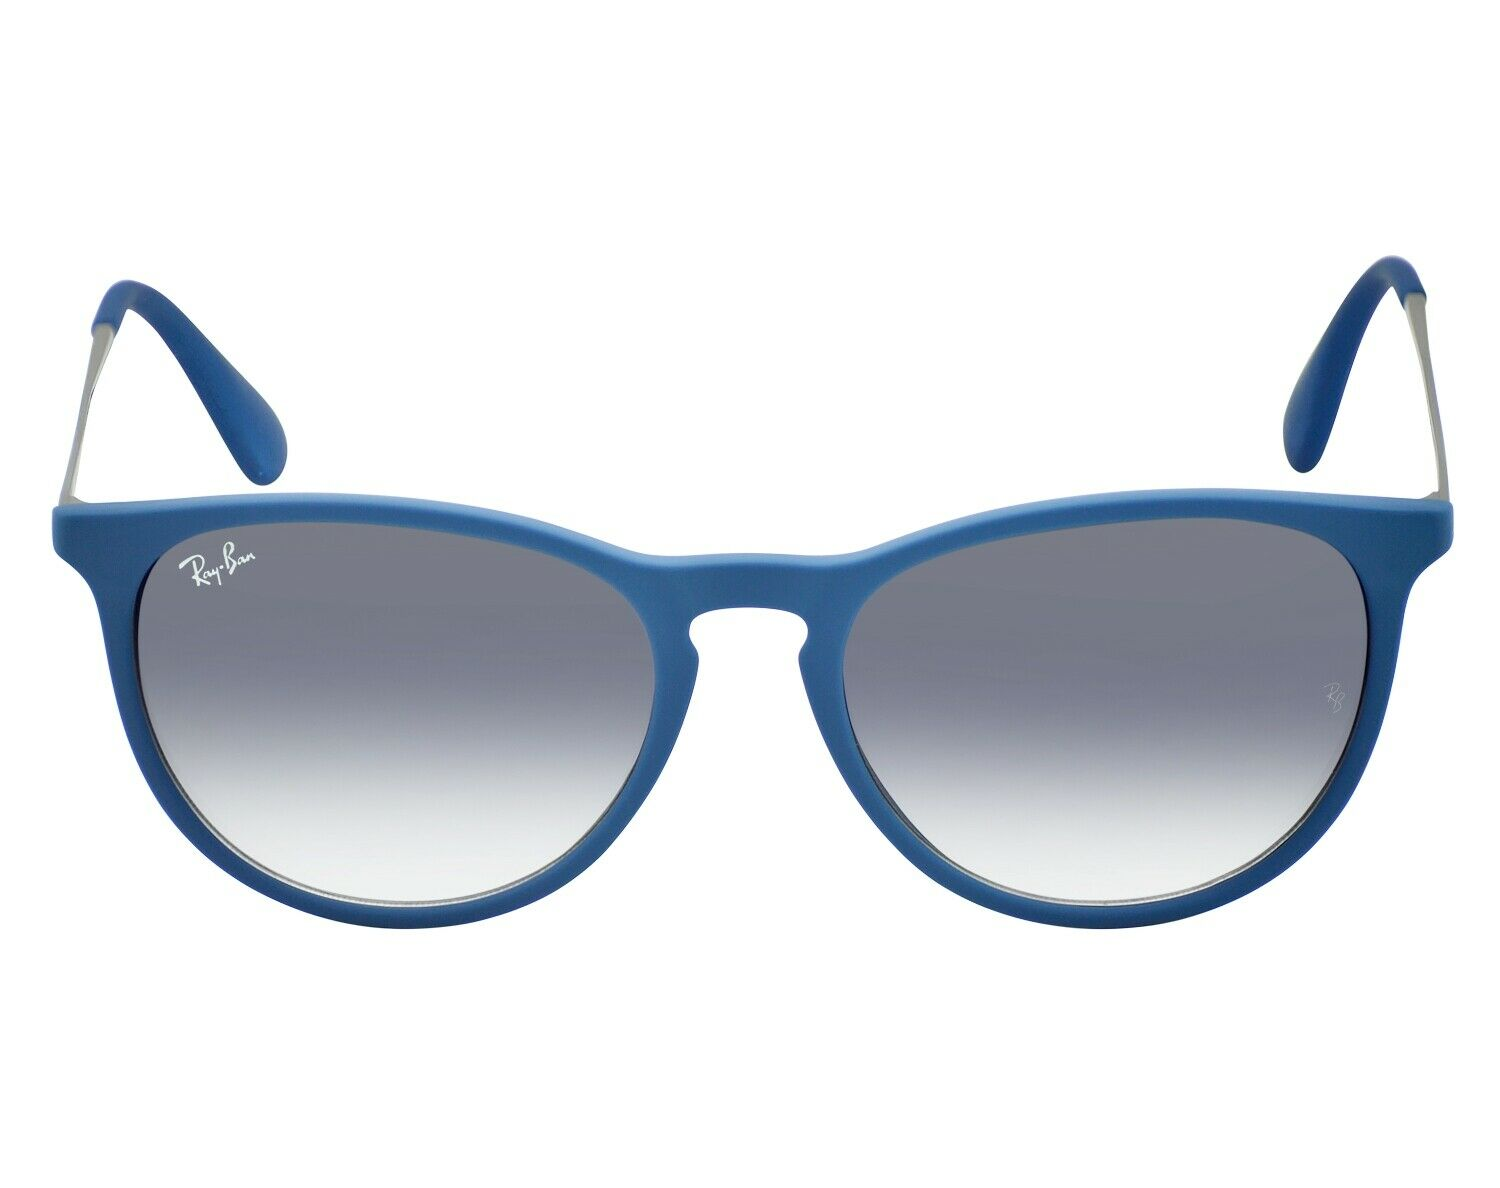 d0054f3bfb Ray-Ban Erika RB4171 Women s Sunglasses - Blue Gray for sale online ...